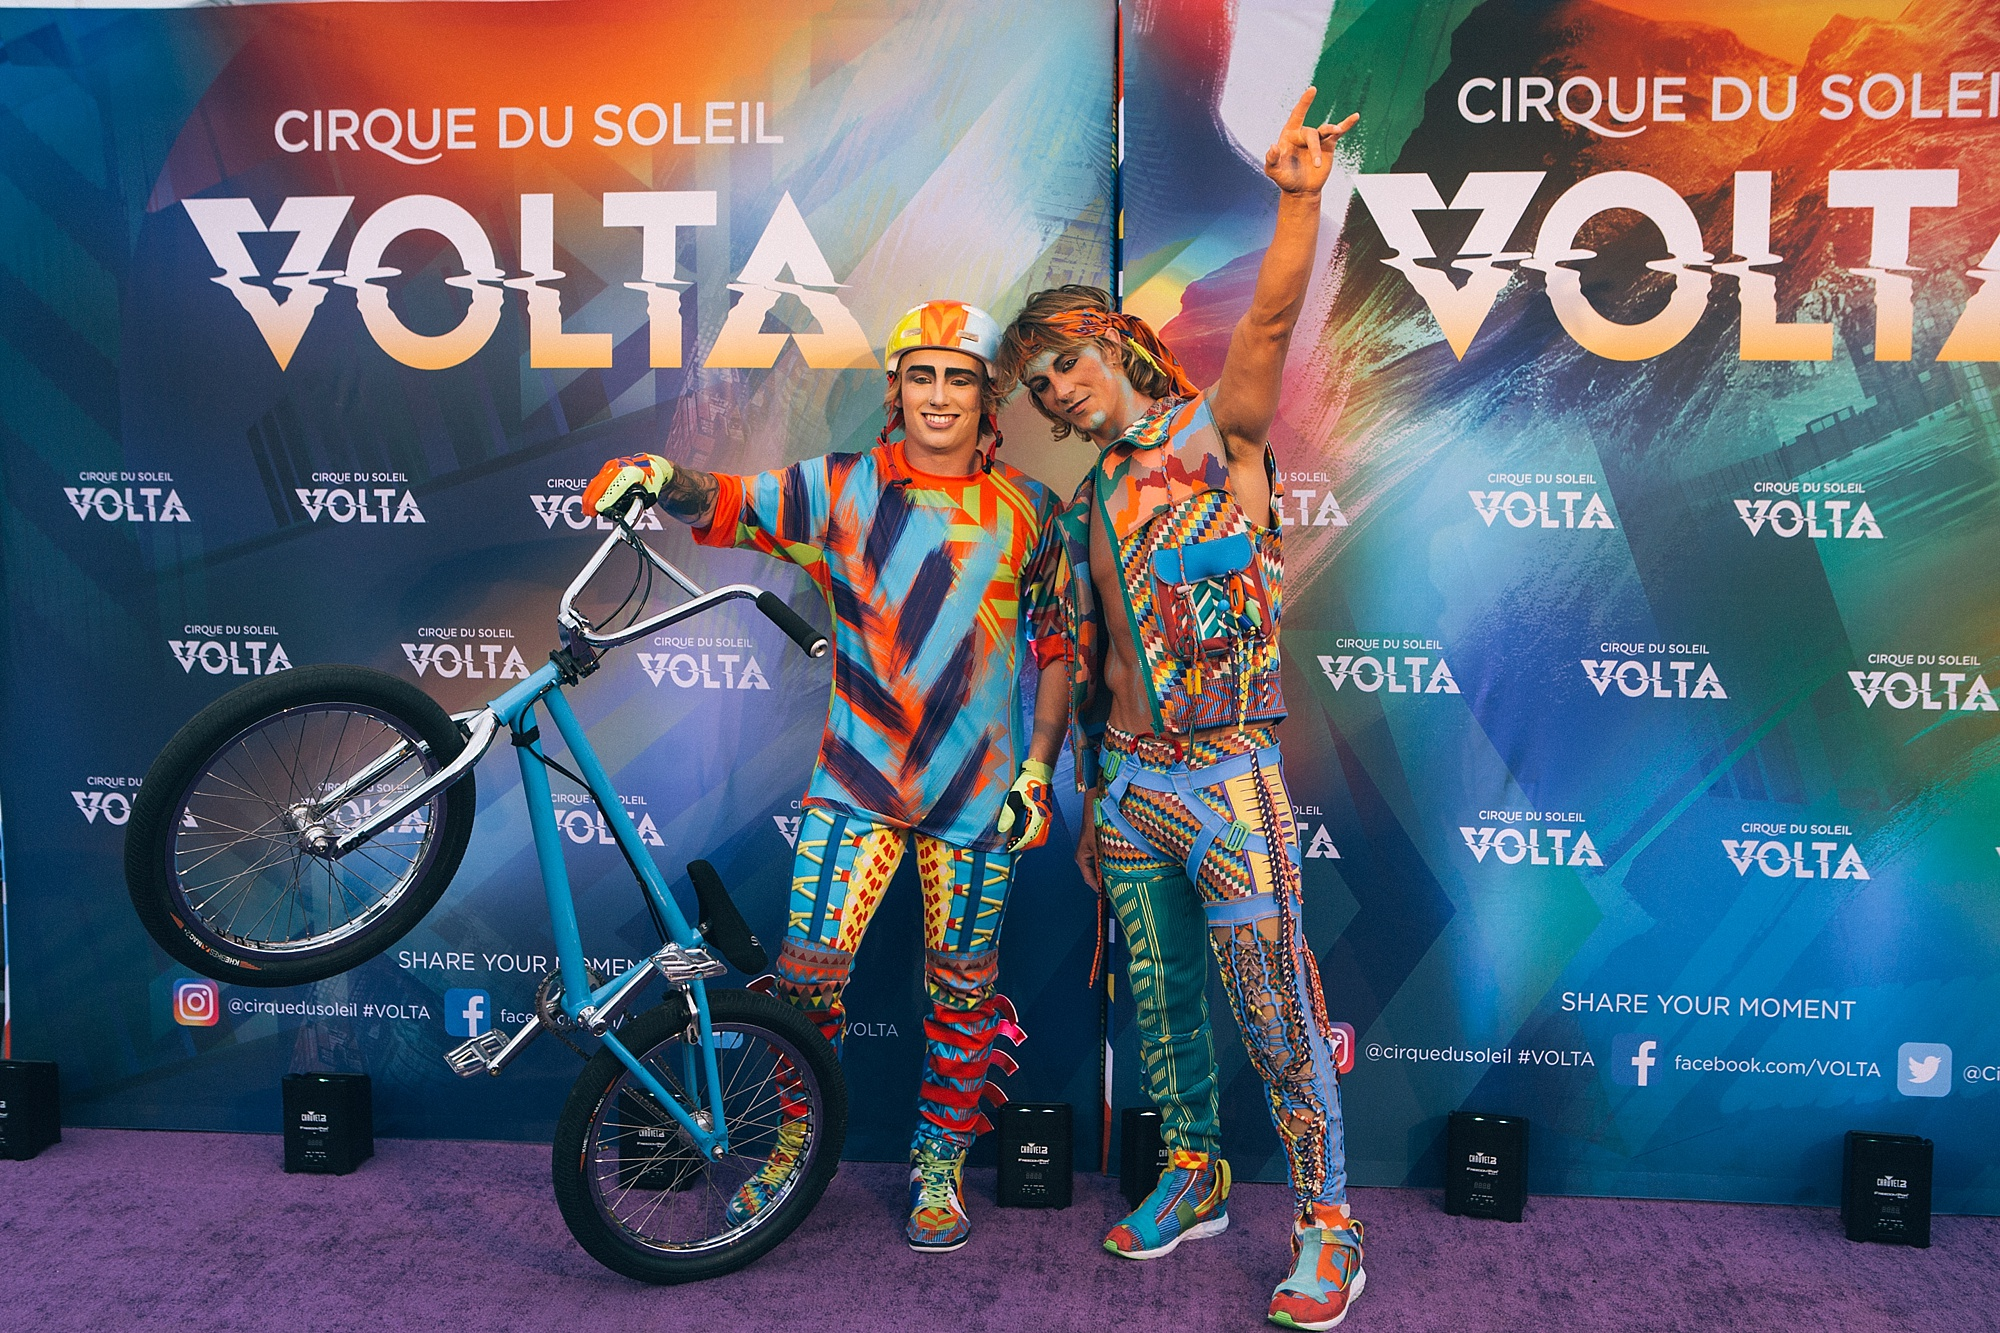 Joe_Mac_Creative_cirque_du_soleil_volta_Greater Philadelphia_Expo_Center_Oaks_PA_Visit_Valley _Forge_0004.jpg